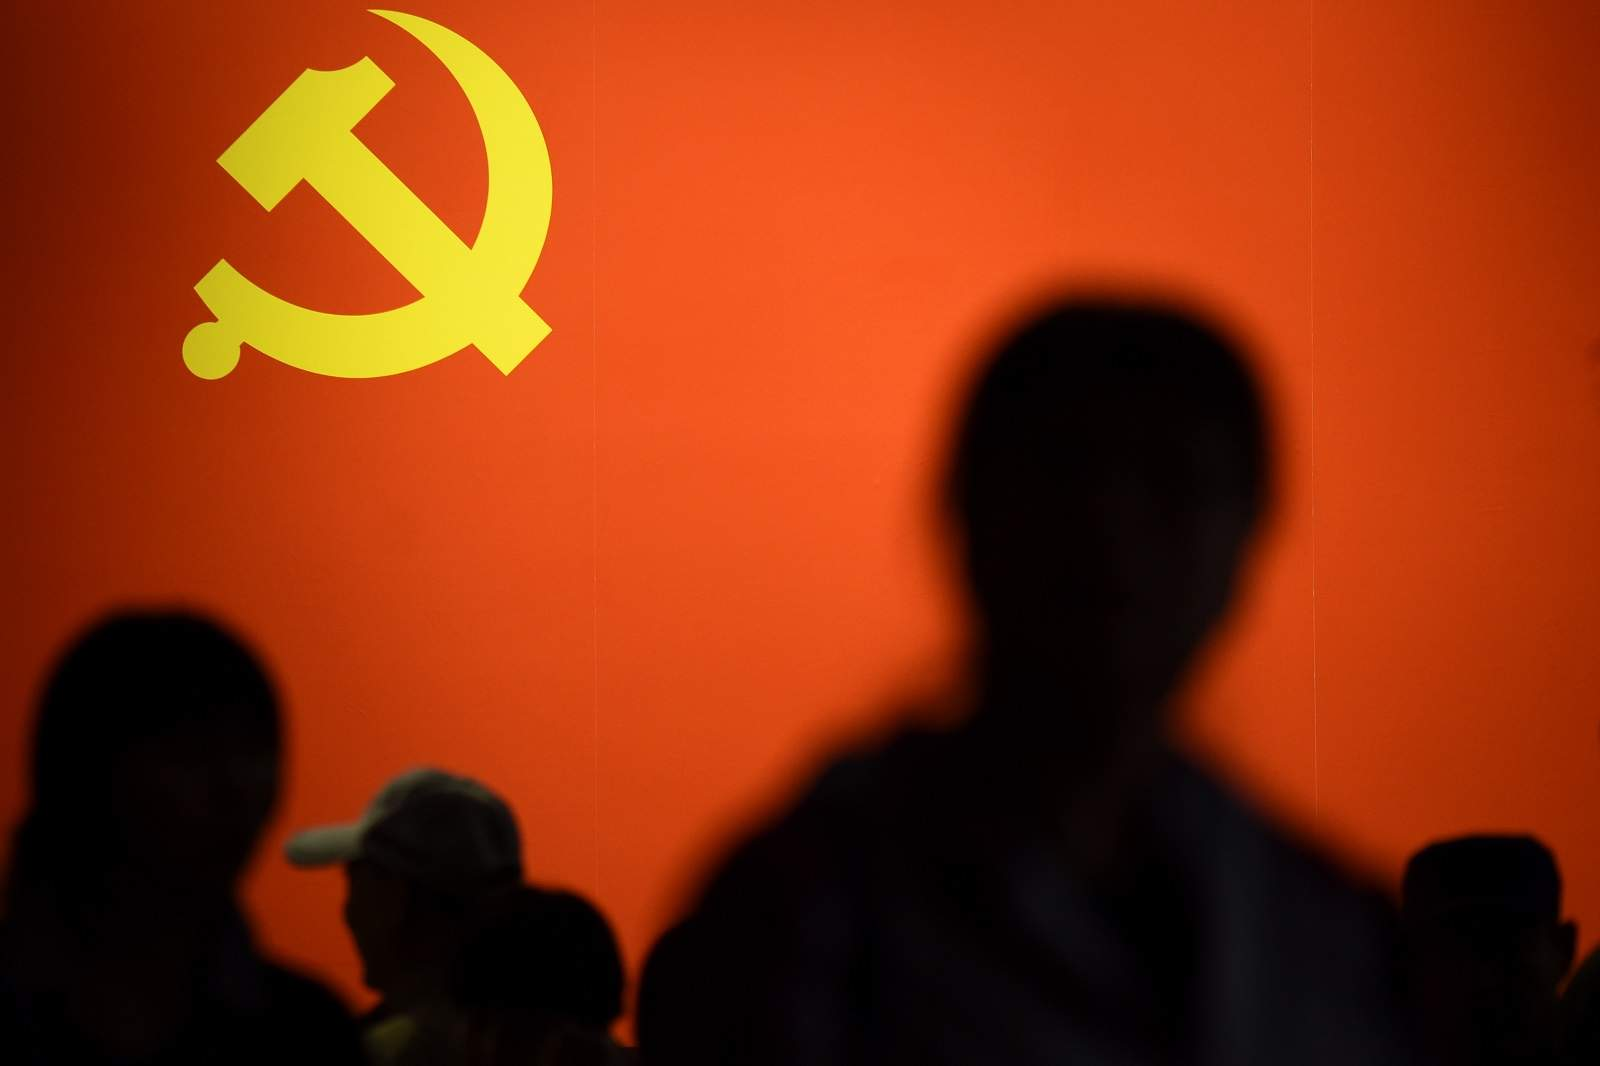 China, unlike the Soviet Union in its heyday, does not expect the world to adopt its communist model (Wang Zhao/AFP via Getty Images)